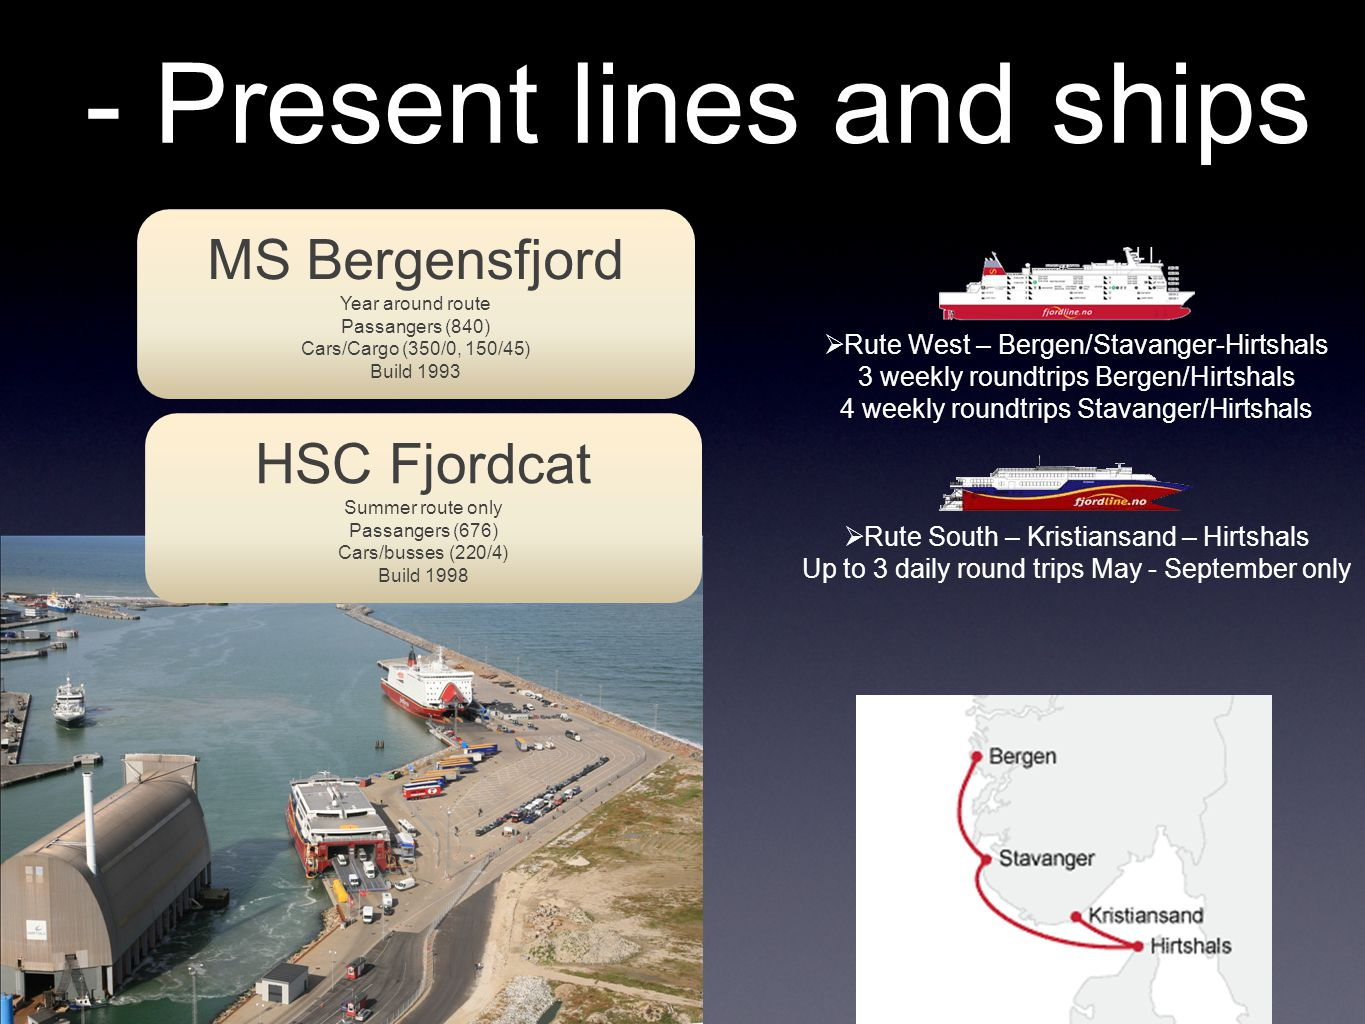 - Present lines and ships MS Bergensfjord Year around route Passangers (840) Cars/Cargo (350/0, 150/45) Build 1993  Rute West – Bergen/Stavanger-Hirtshals 3 weekly roundtrips Bergen/Hirtshals 4 weekly roundtrips Stavanger/Hirtshals  Rute South – Kristiansand – Hirtshals Up to 3 daily round trips May - September only HSC Fjordcat Summer route only Passangers (676) Cars/busses (220/4) Build 1998